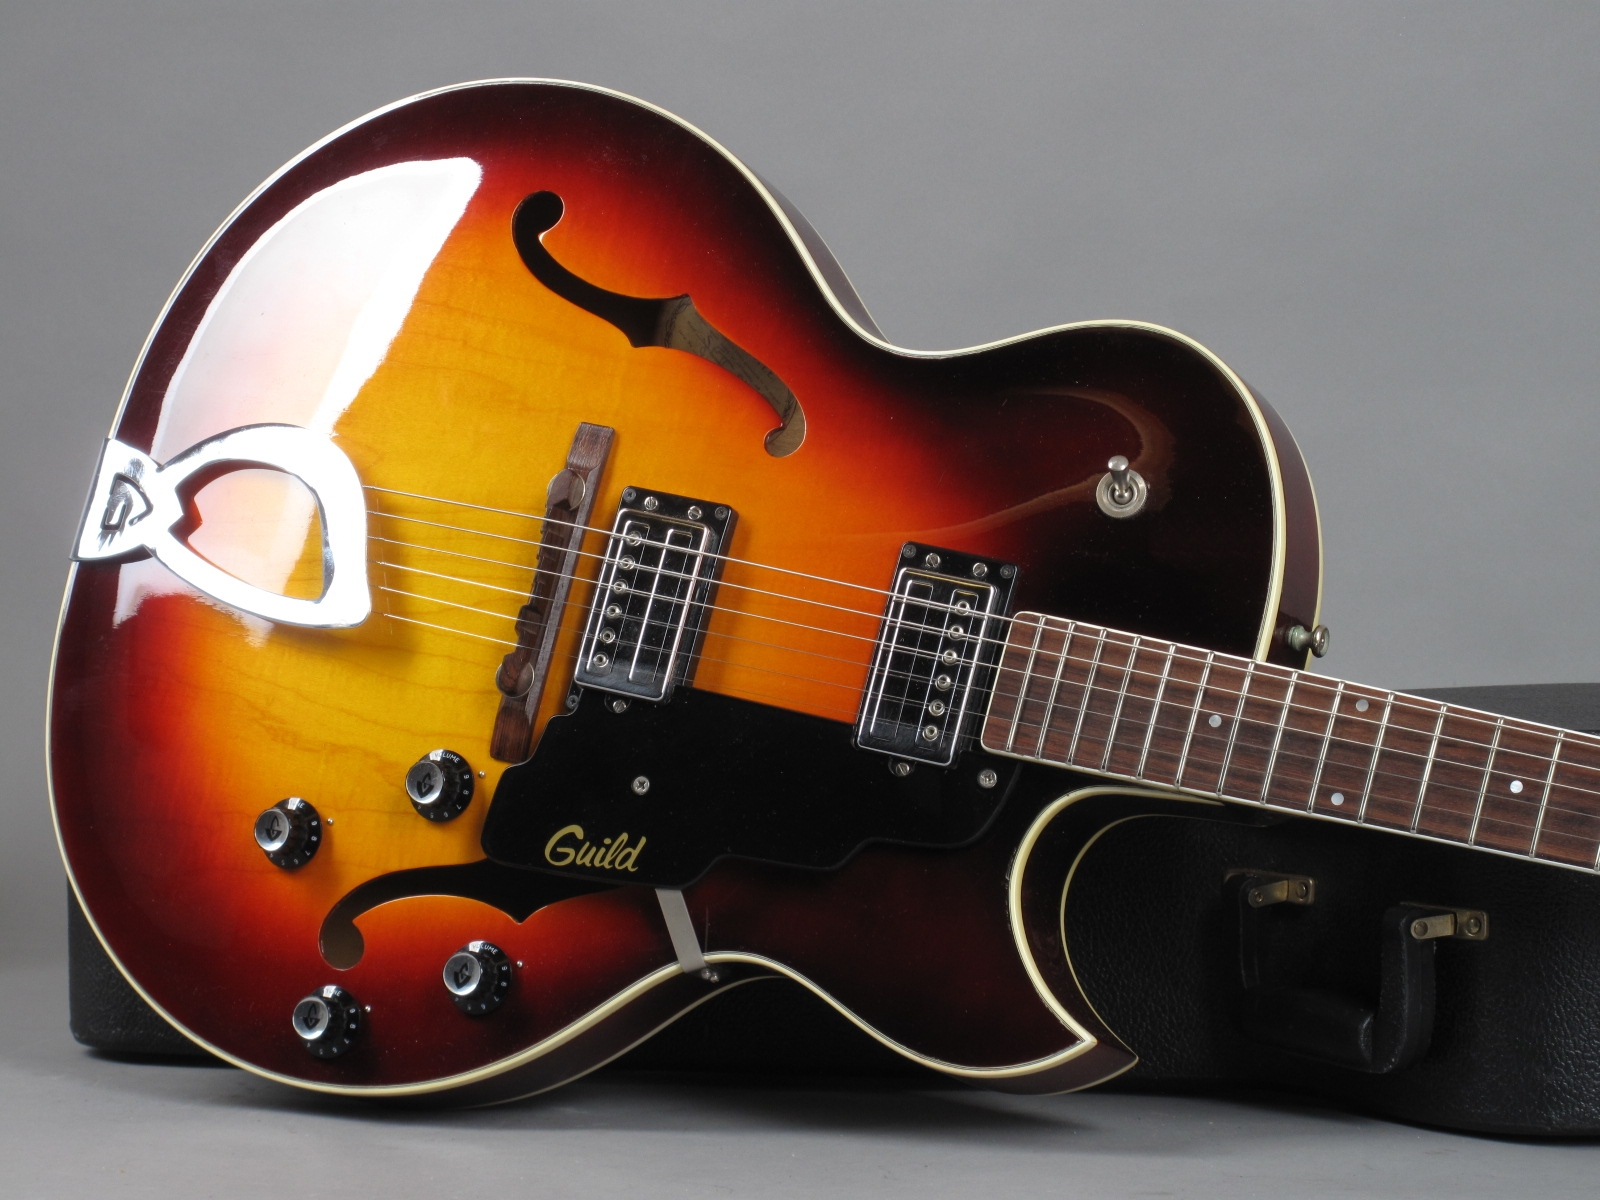 https://guitarpoint.de/app/uploads/products/1972-guild-starfire-ii/1973-Guild-Starfire-II-Sunburst-81491-19.jpg